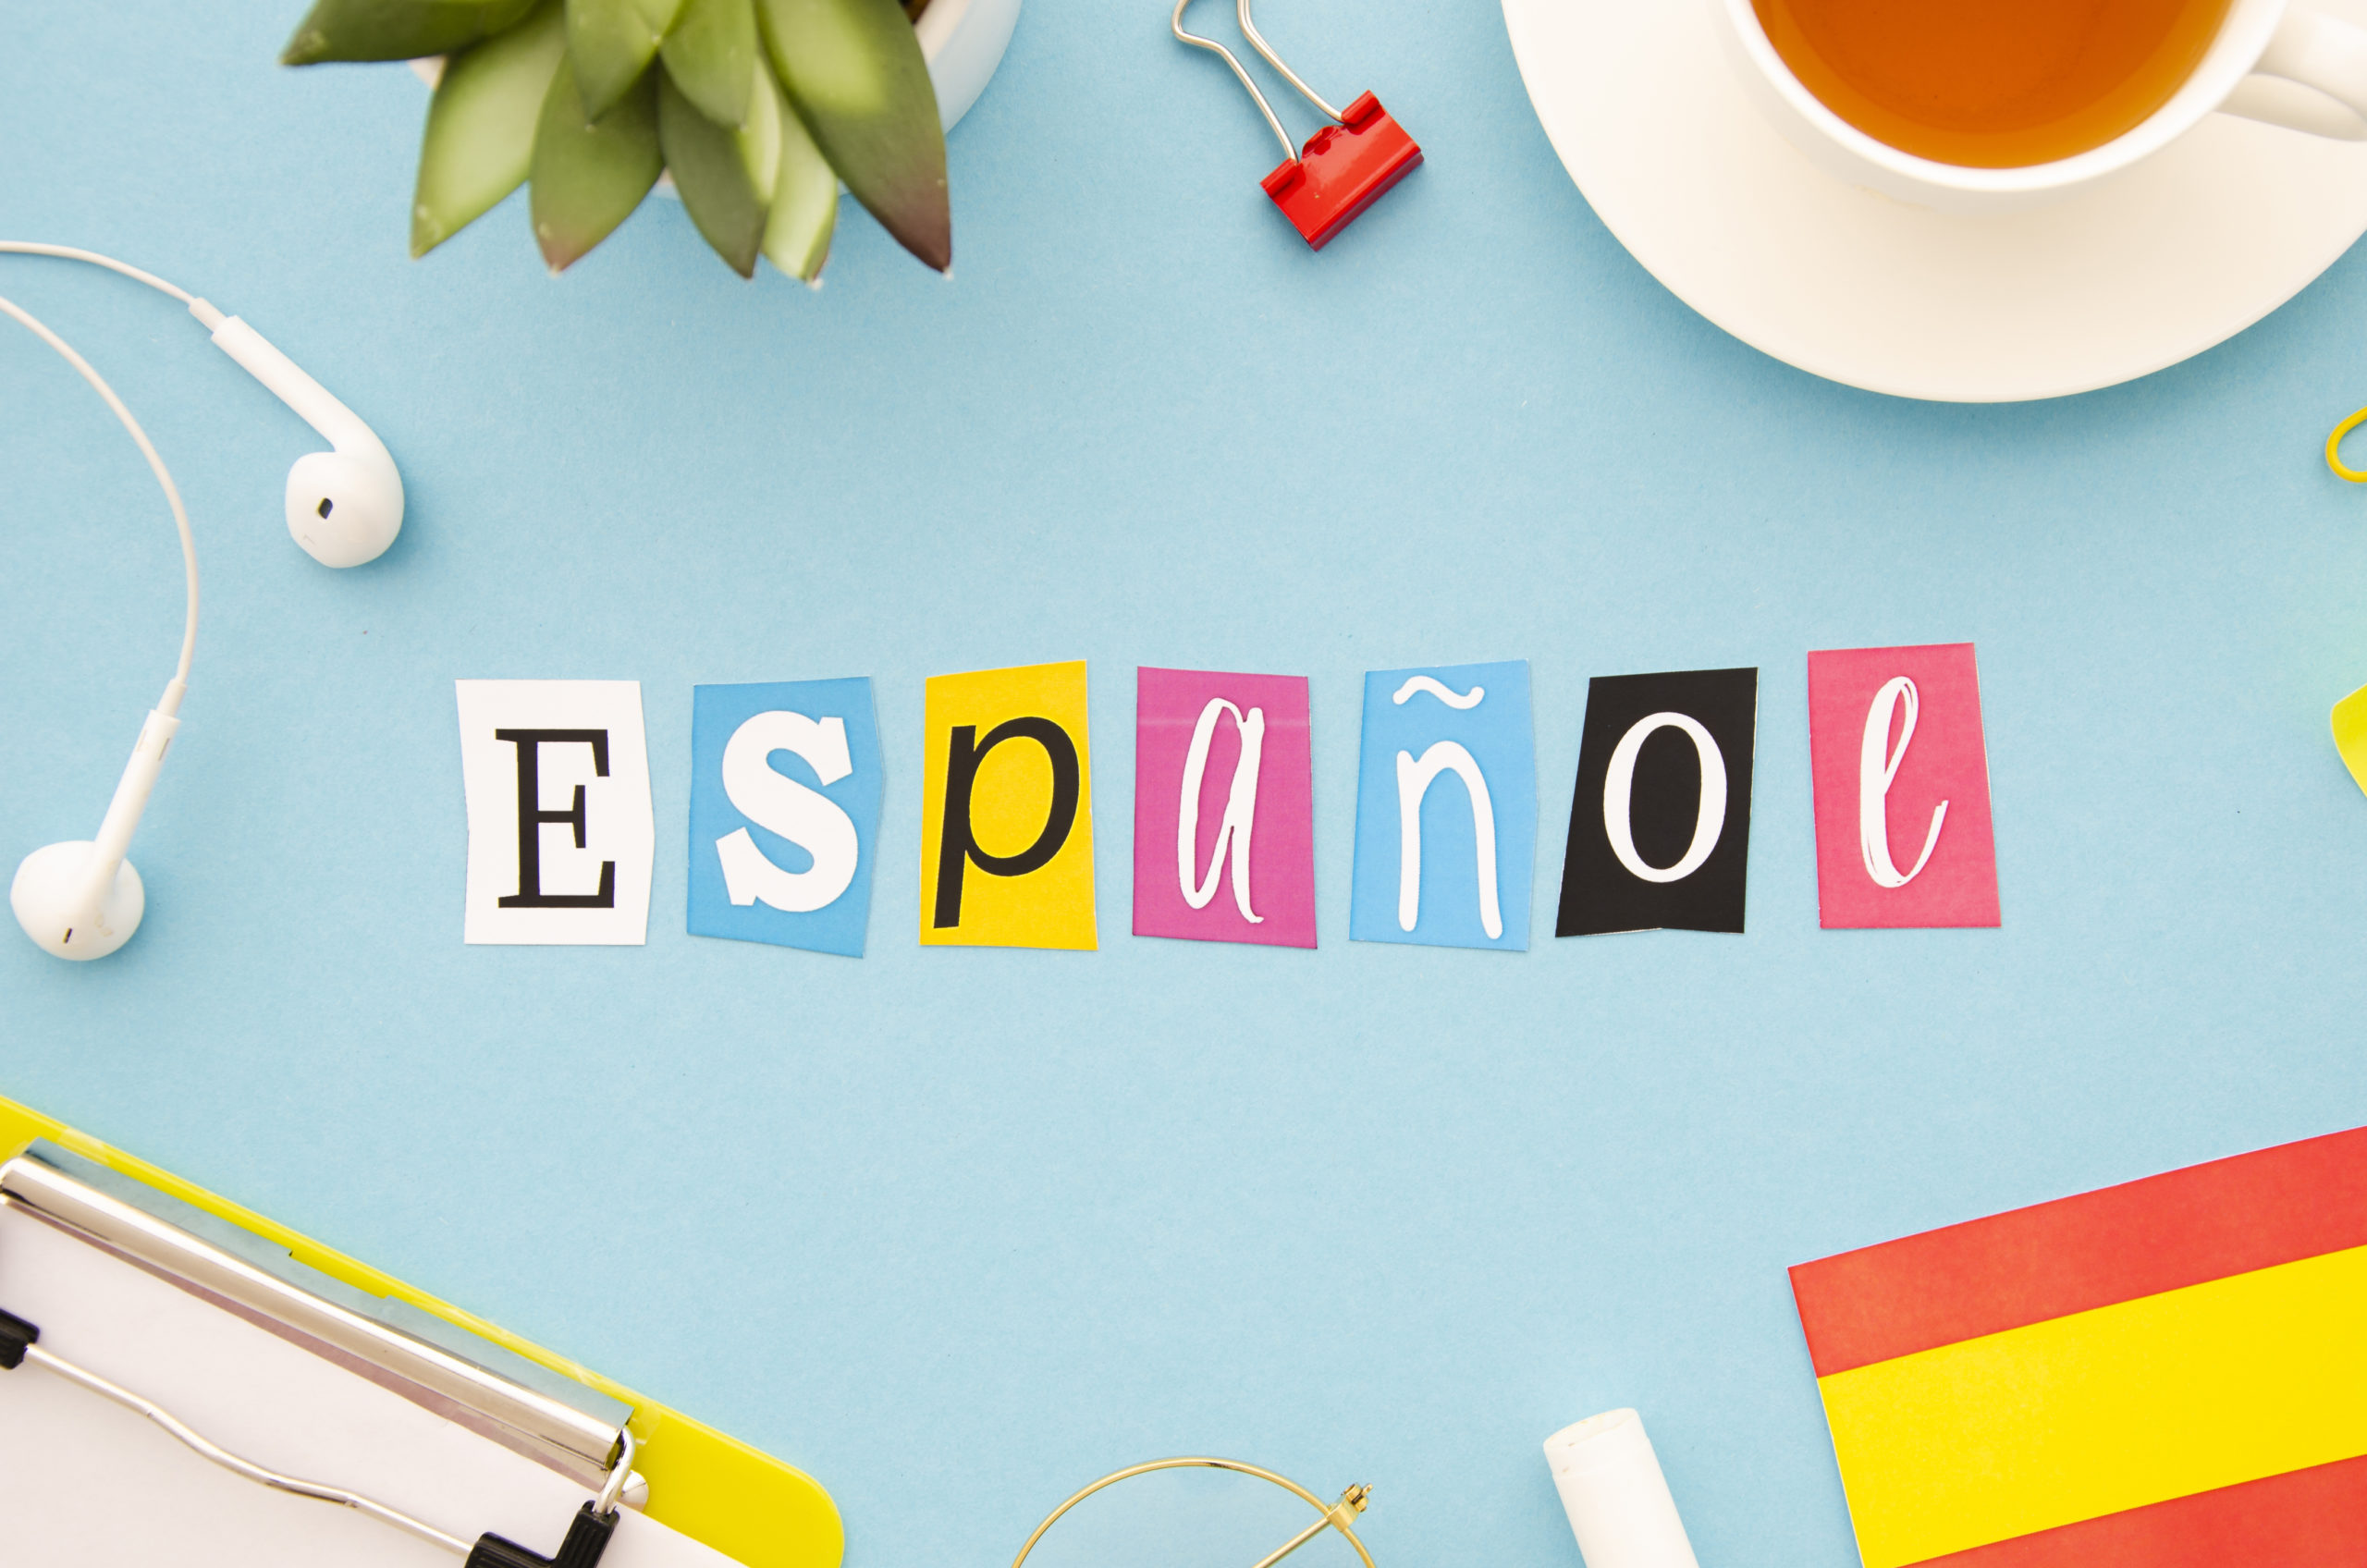 learn spanish with rocket language